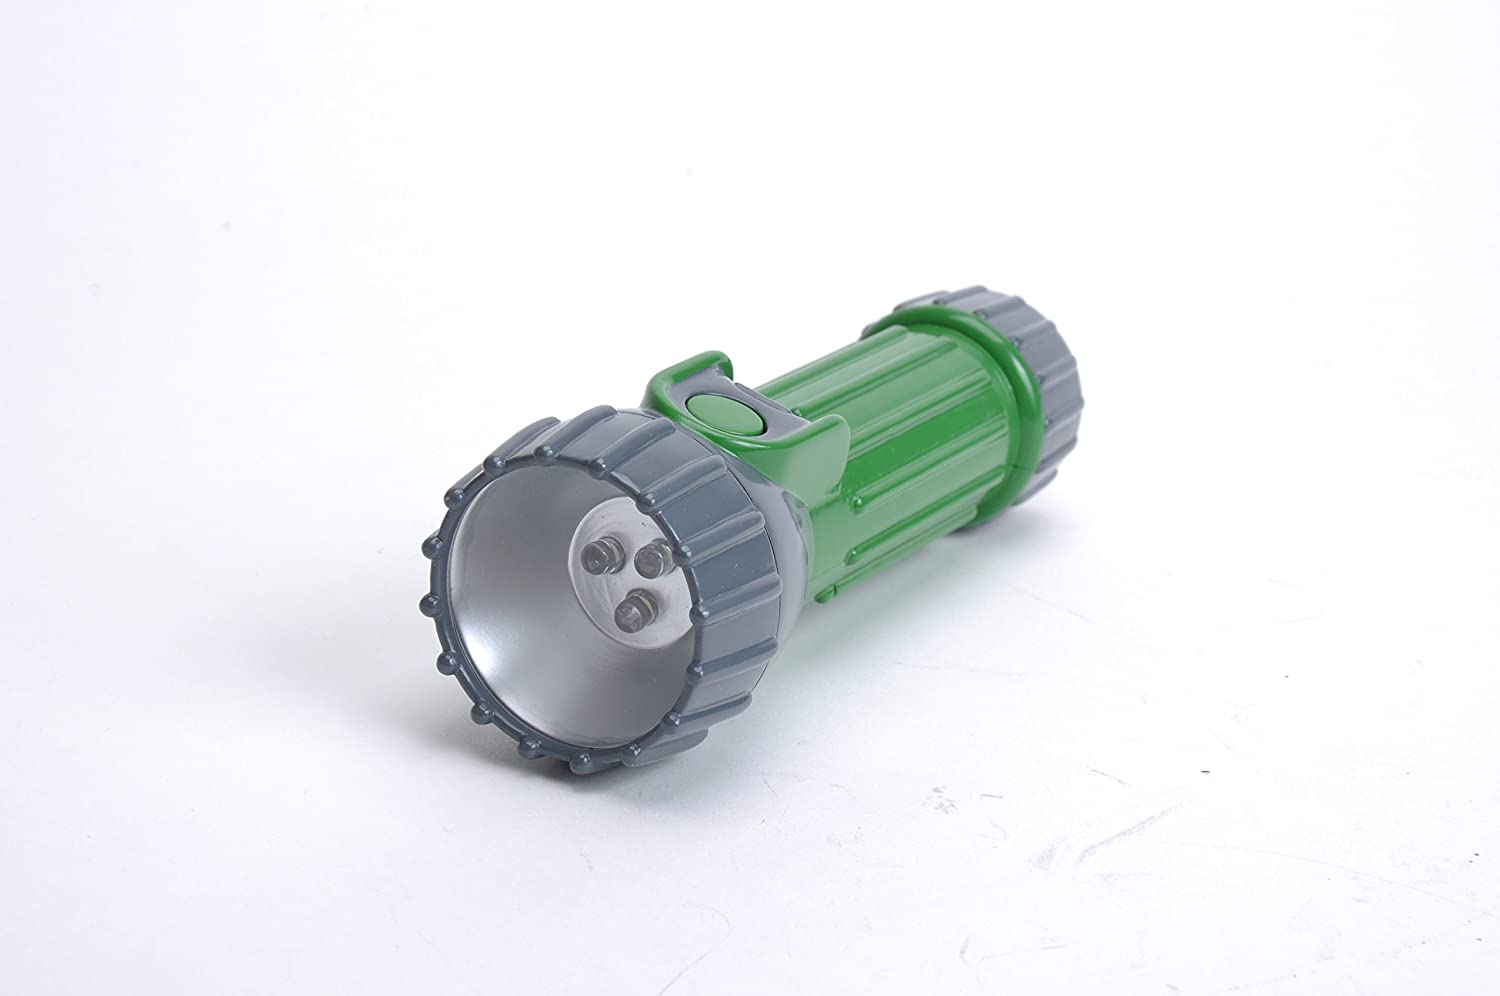 Image of a flashlight in gray and green color, lens facing front.